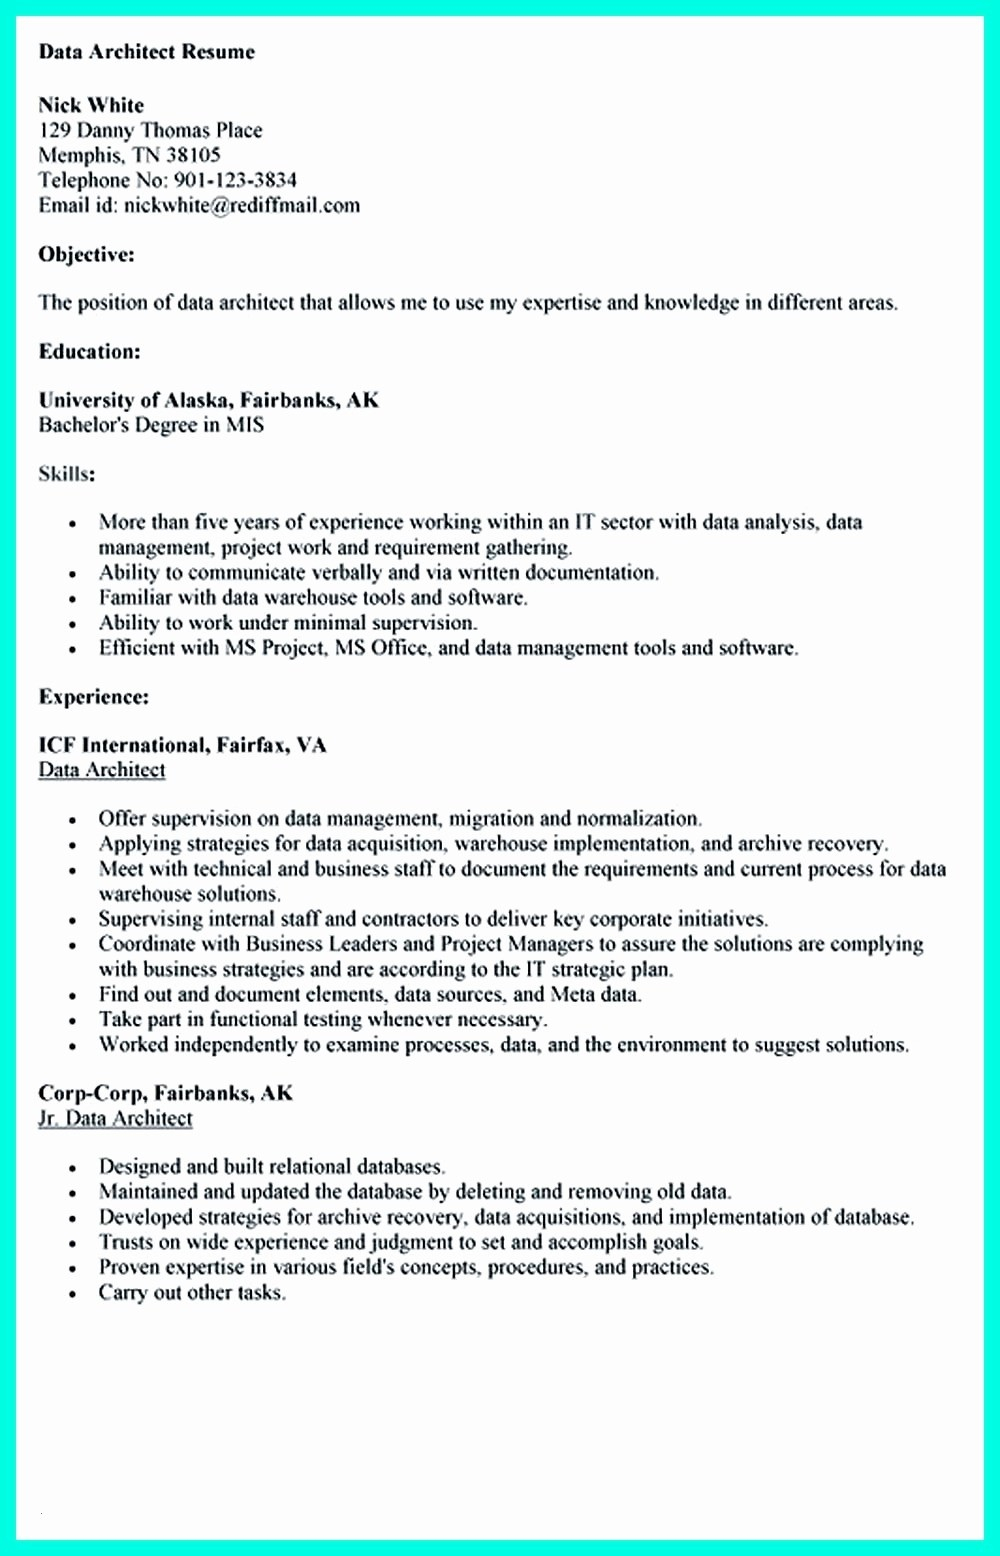 Caregiver Resume Objective - Caregiver Resume Samples Elegant Caregiver Resume Samples